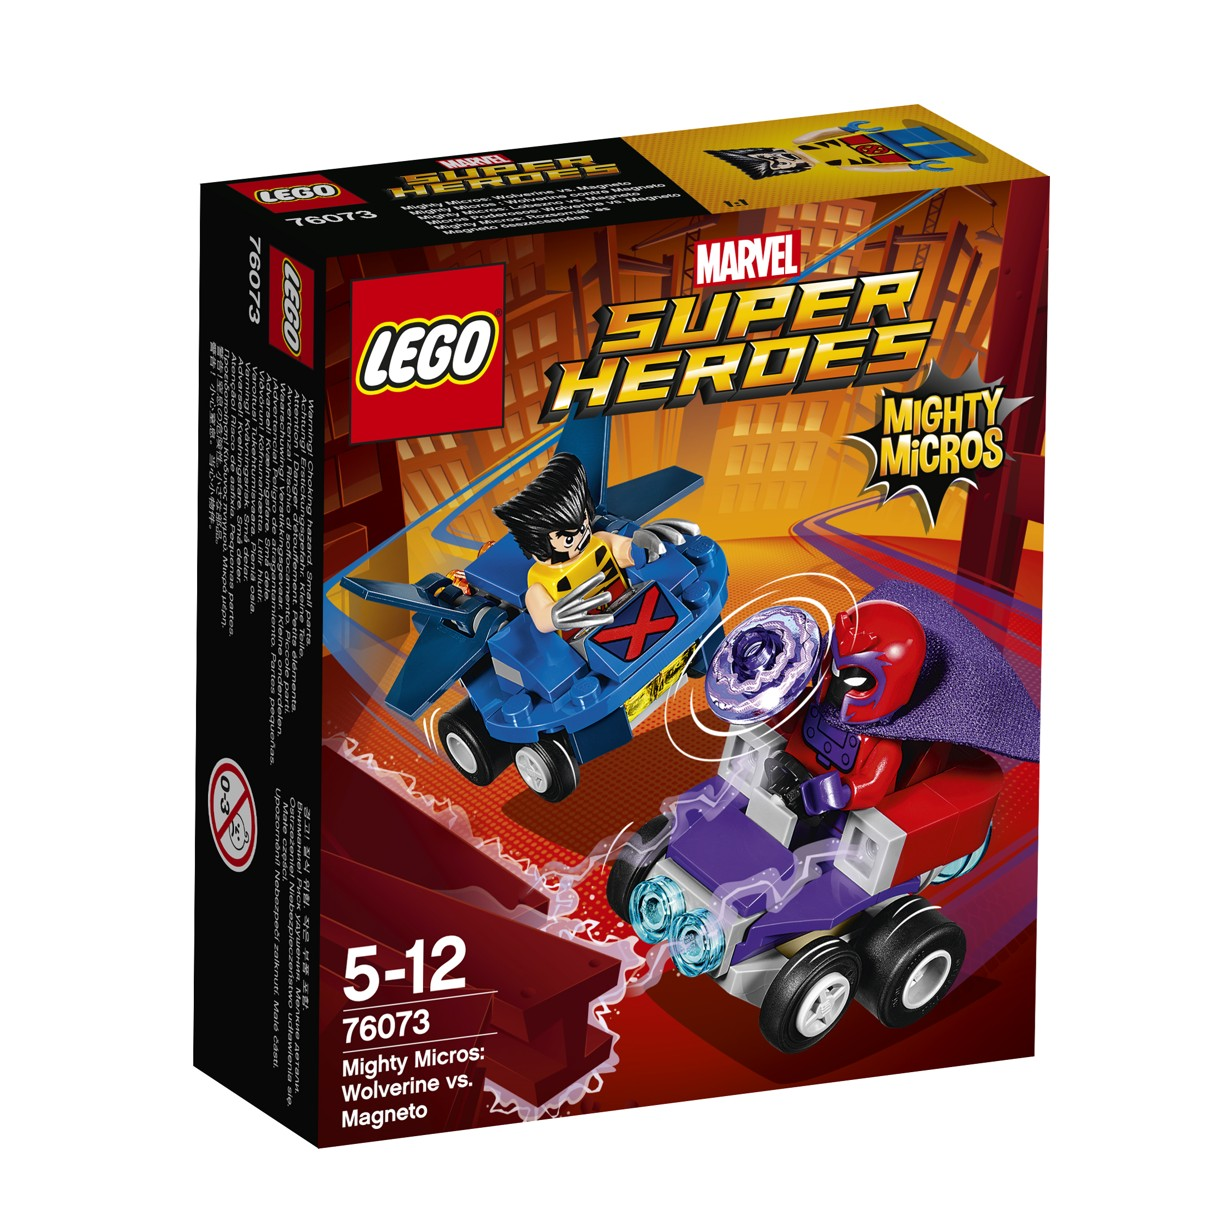 LEGO® Marvel Super Heroes 76073 Mighty Micros: Wolverine vs. Magneto